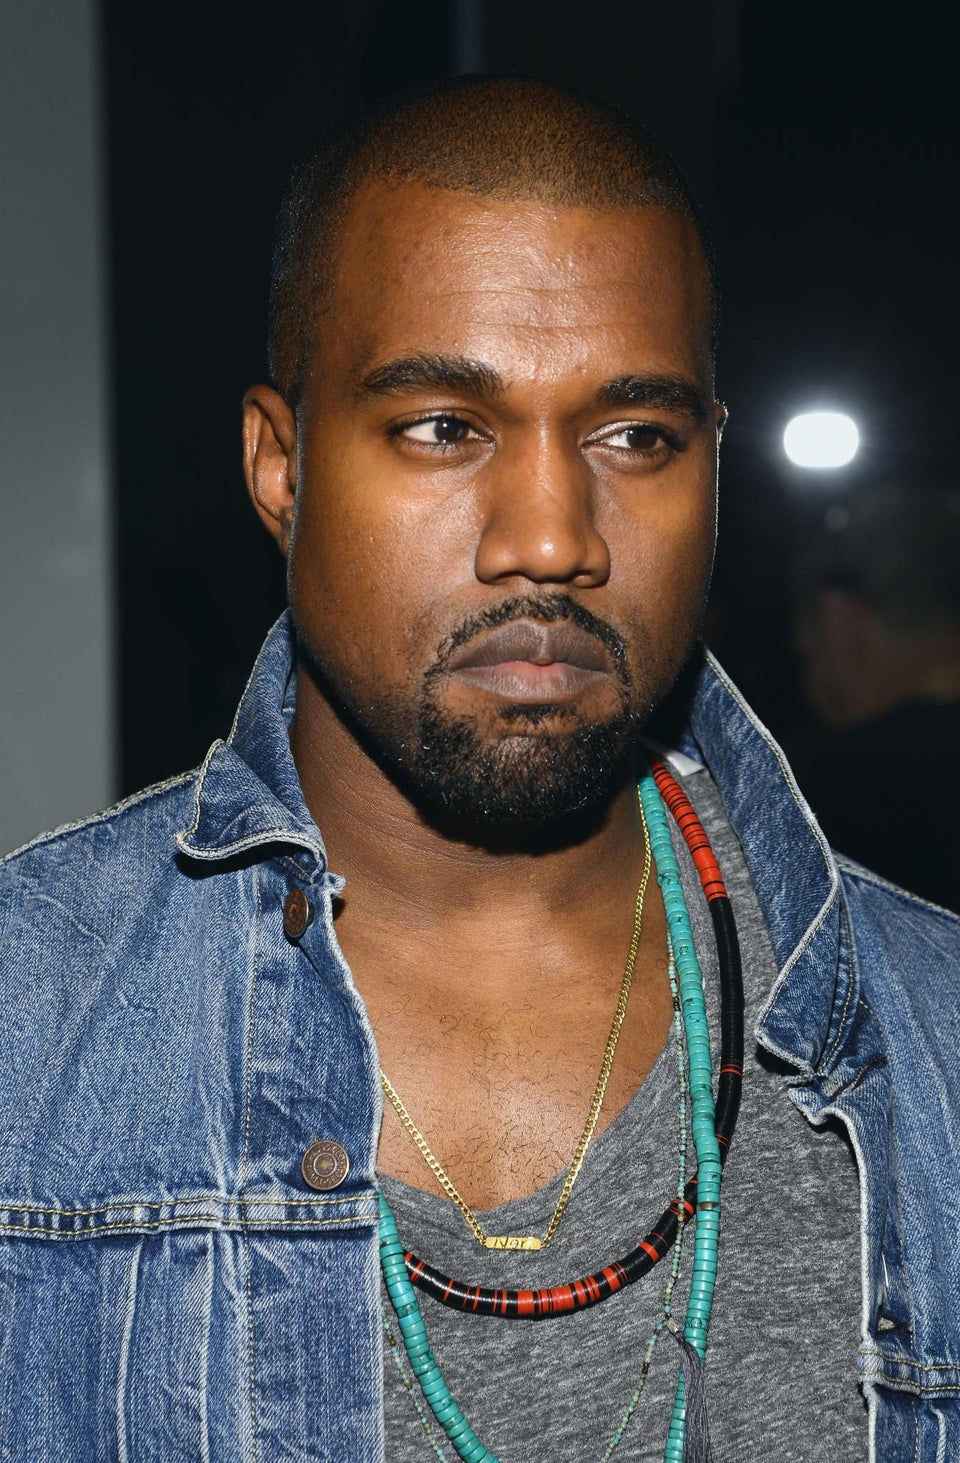 Coffee Talk: Kanye West Ordered to Take Anger Management Classes After Paparazzi Scuffle